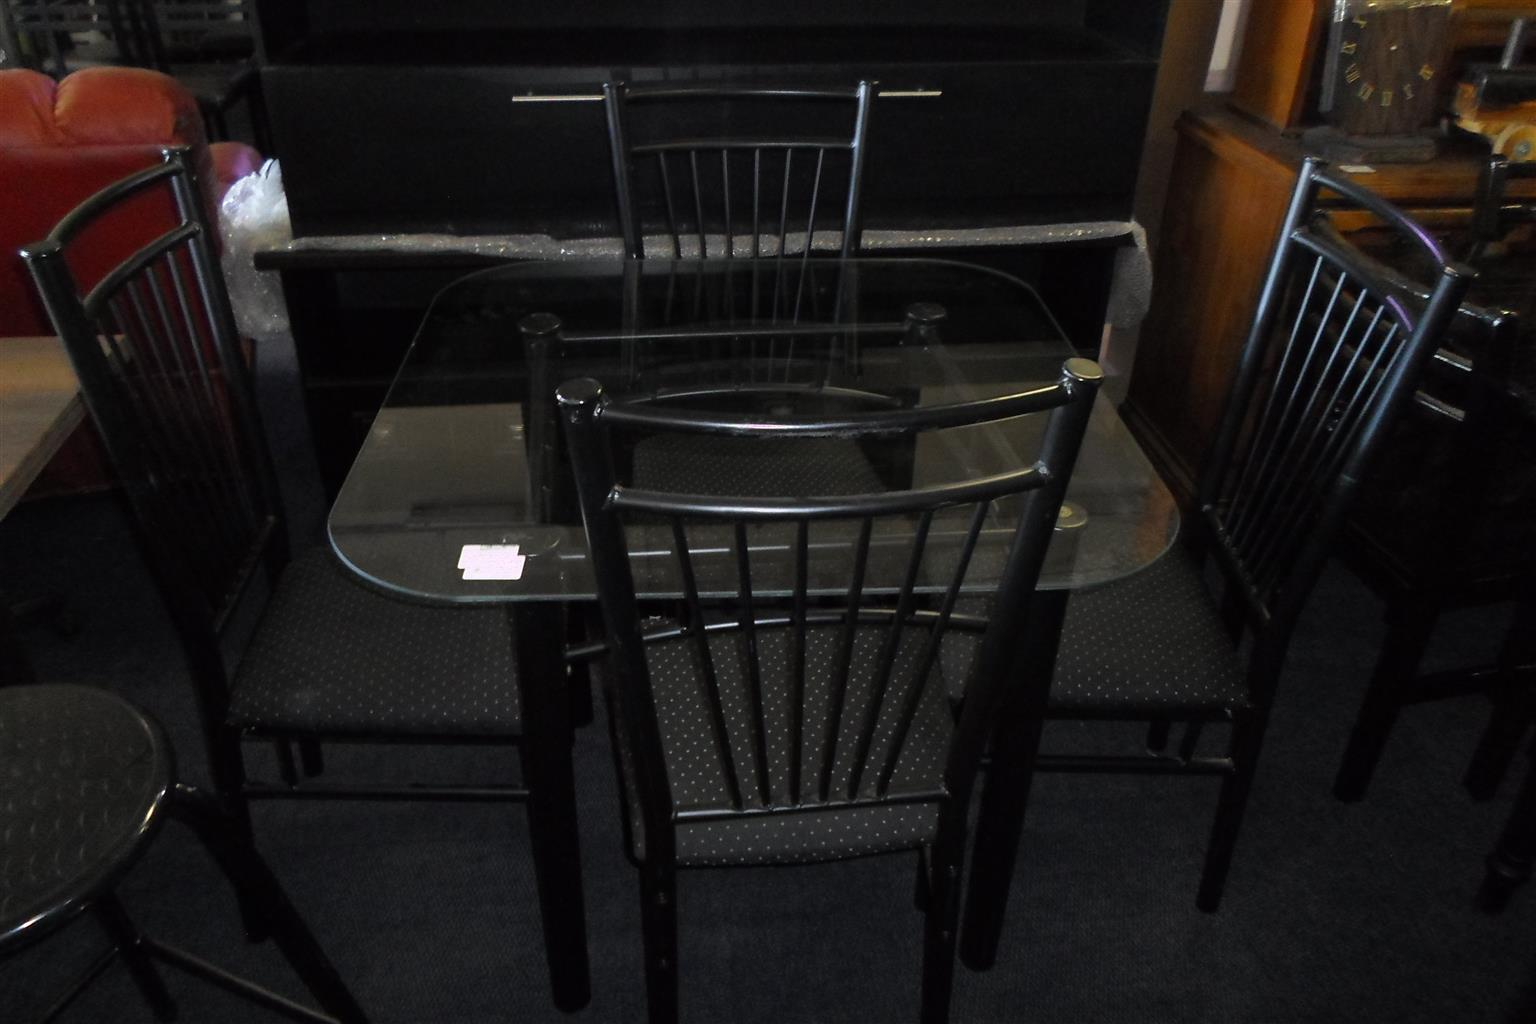 4 Seater Table with Chairs - B033037444-13